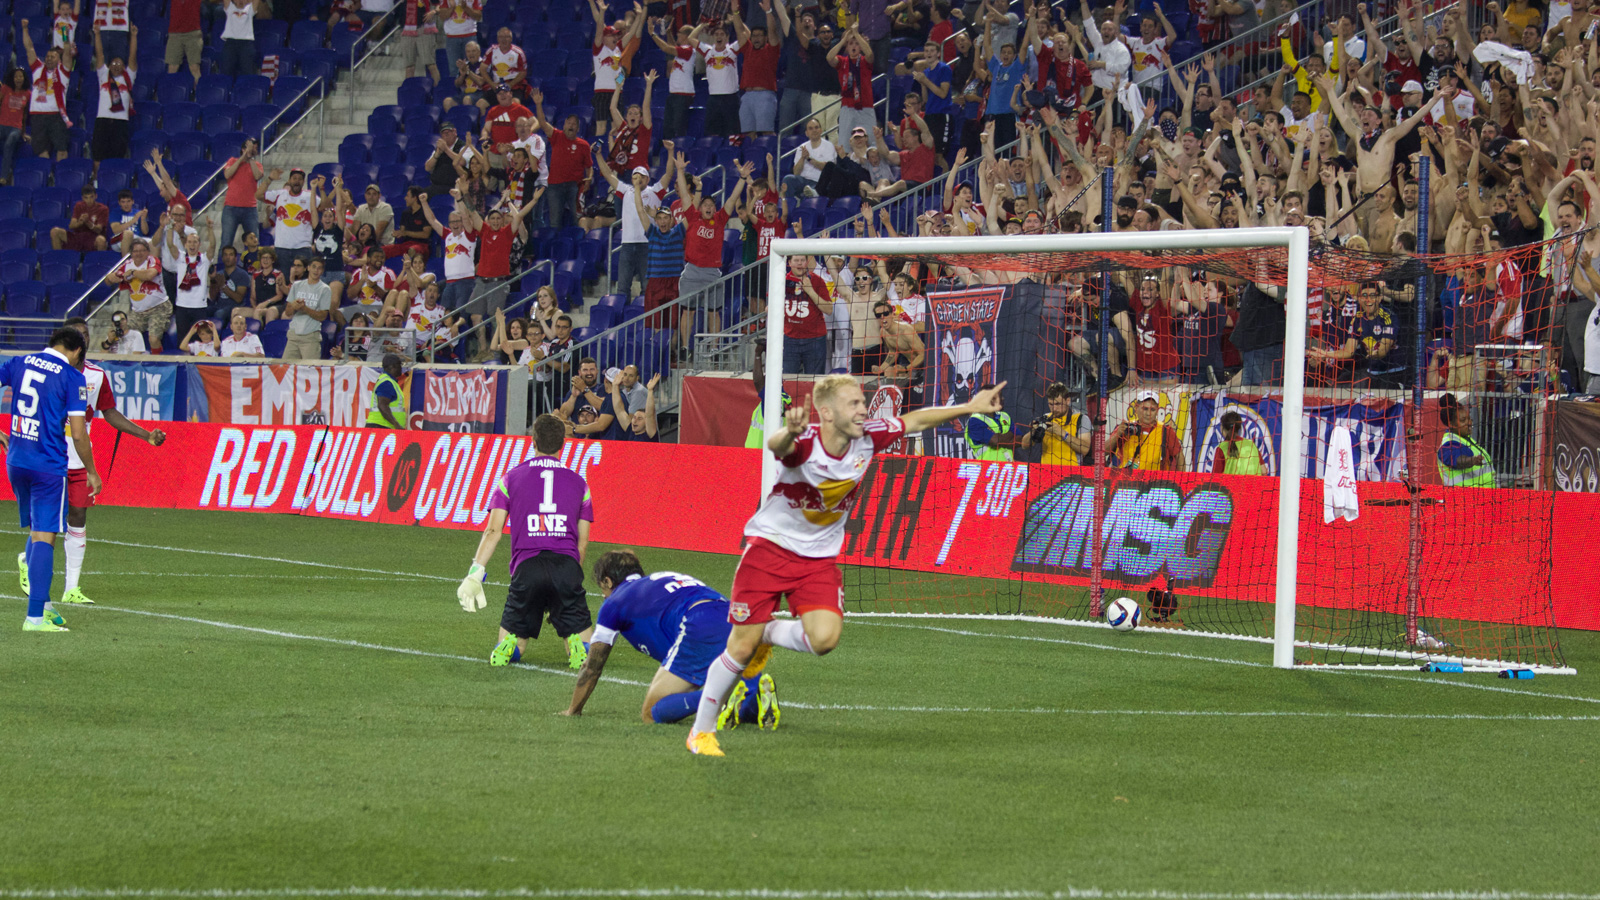 New York Red Bulls striker Mike Grella (13) celebrates his goal, the Red Bulls' seventh in a week against the two other New York teams. The 4-1 result against the Cosmos was preceded four days prior by a 3-1 victory over NYCFC.